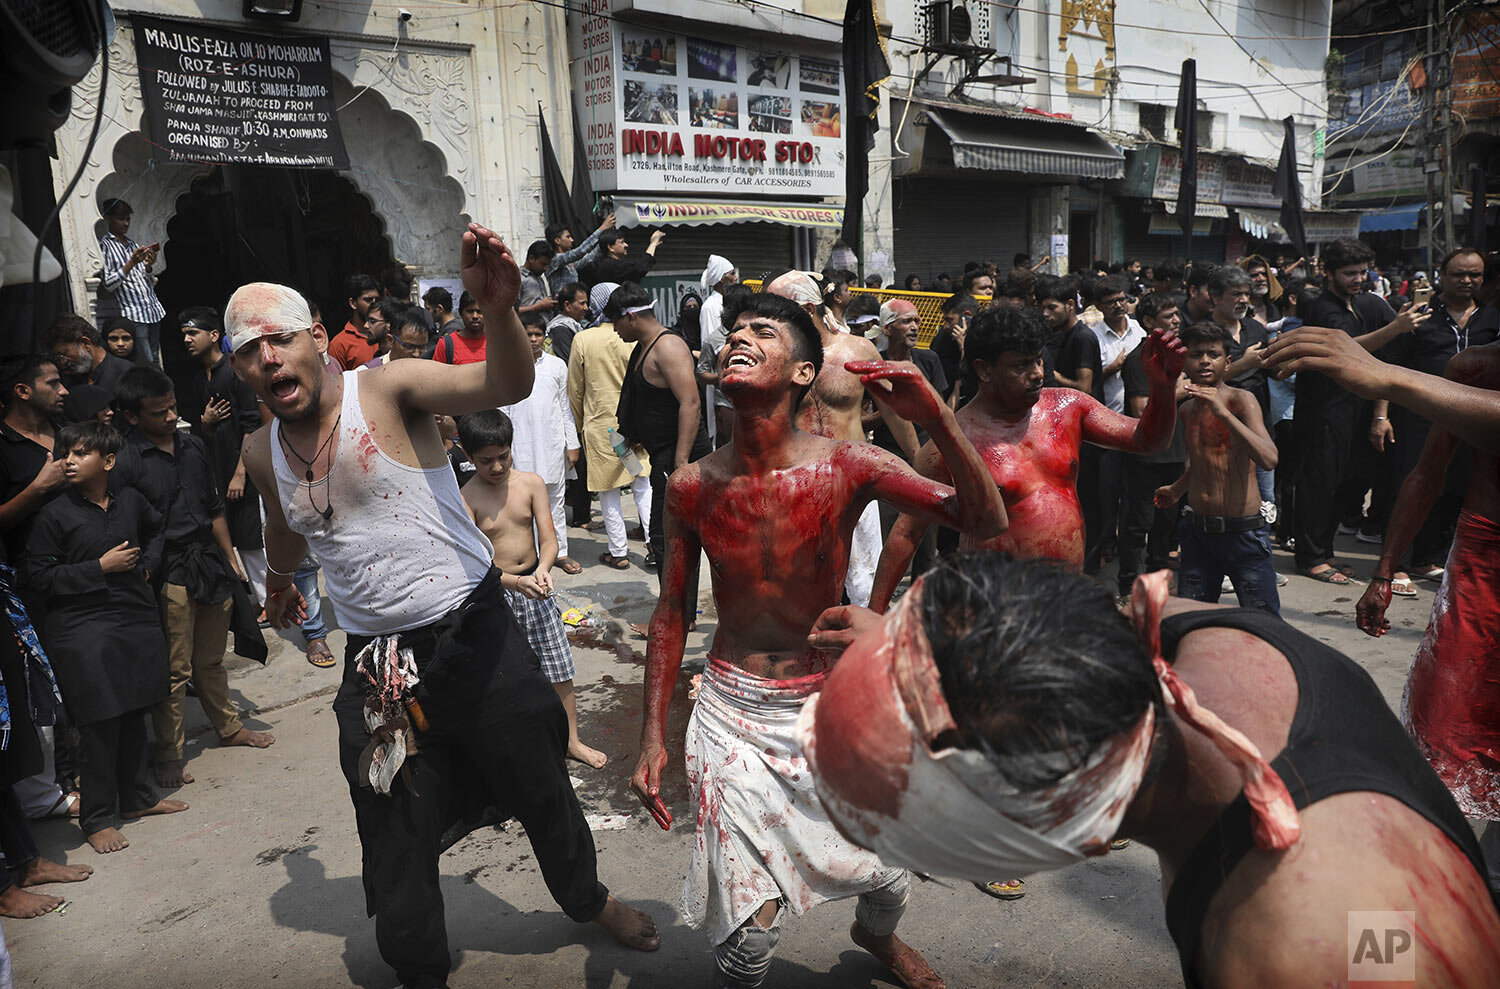 Indian Shiite Muslims flagellate themselves with chained knives during an Ashoura procession in New Delhi, India, Tuesday, Sept. 10, 2019. Shiites mark Ashoura, the tenth day of the month of Muharram, to commemorate the martyrdom of Imam Hussein, a grandson of Prophet Muhammad, during the Battle of Karbala.  (AP Photo/Manish Swarup)